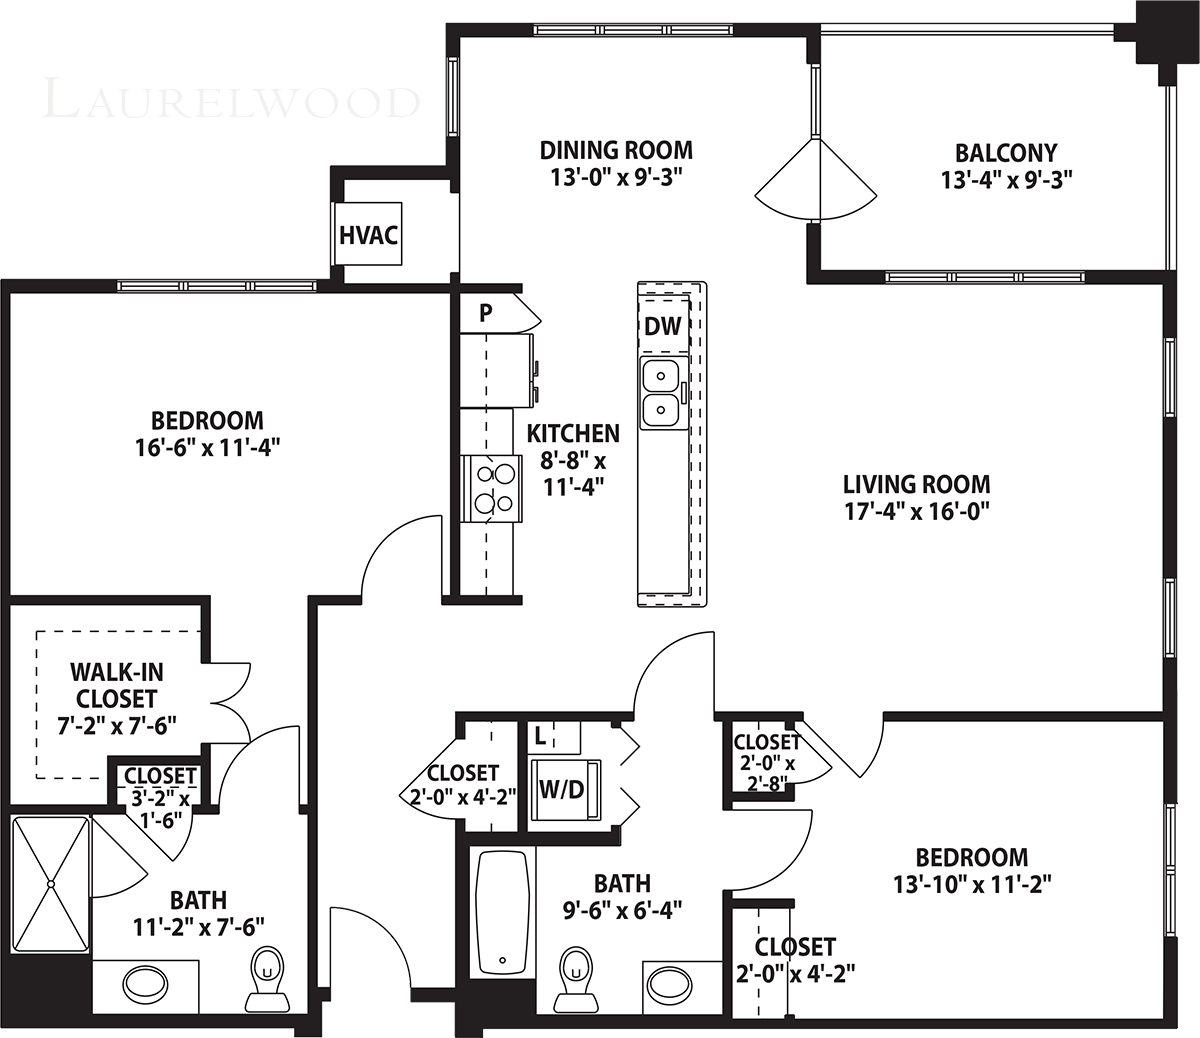 Interactive map of the Laurelwood floor plan that includes pop-up images of the interior